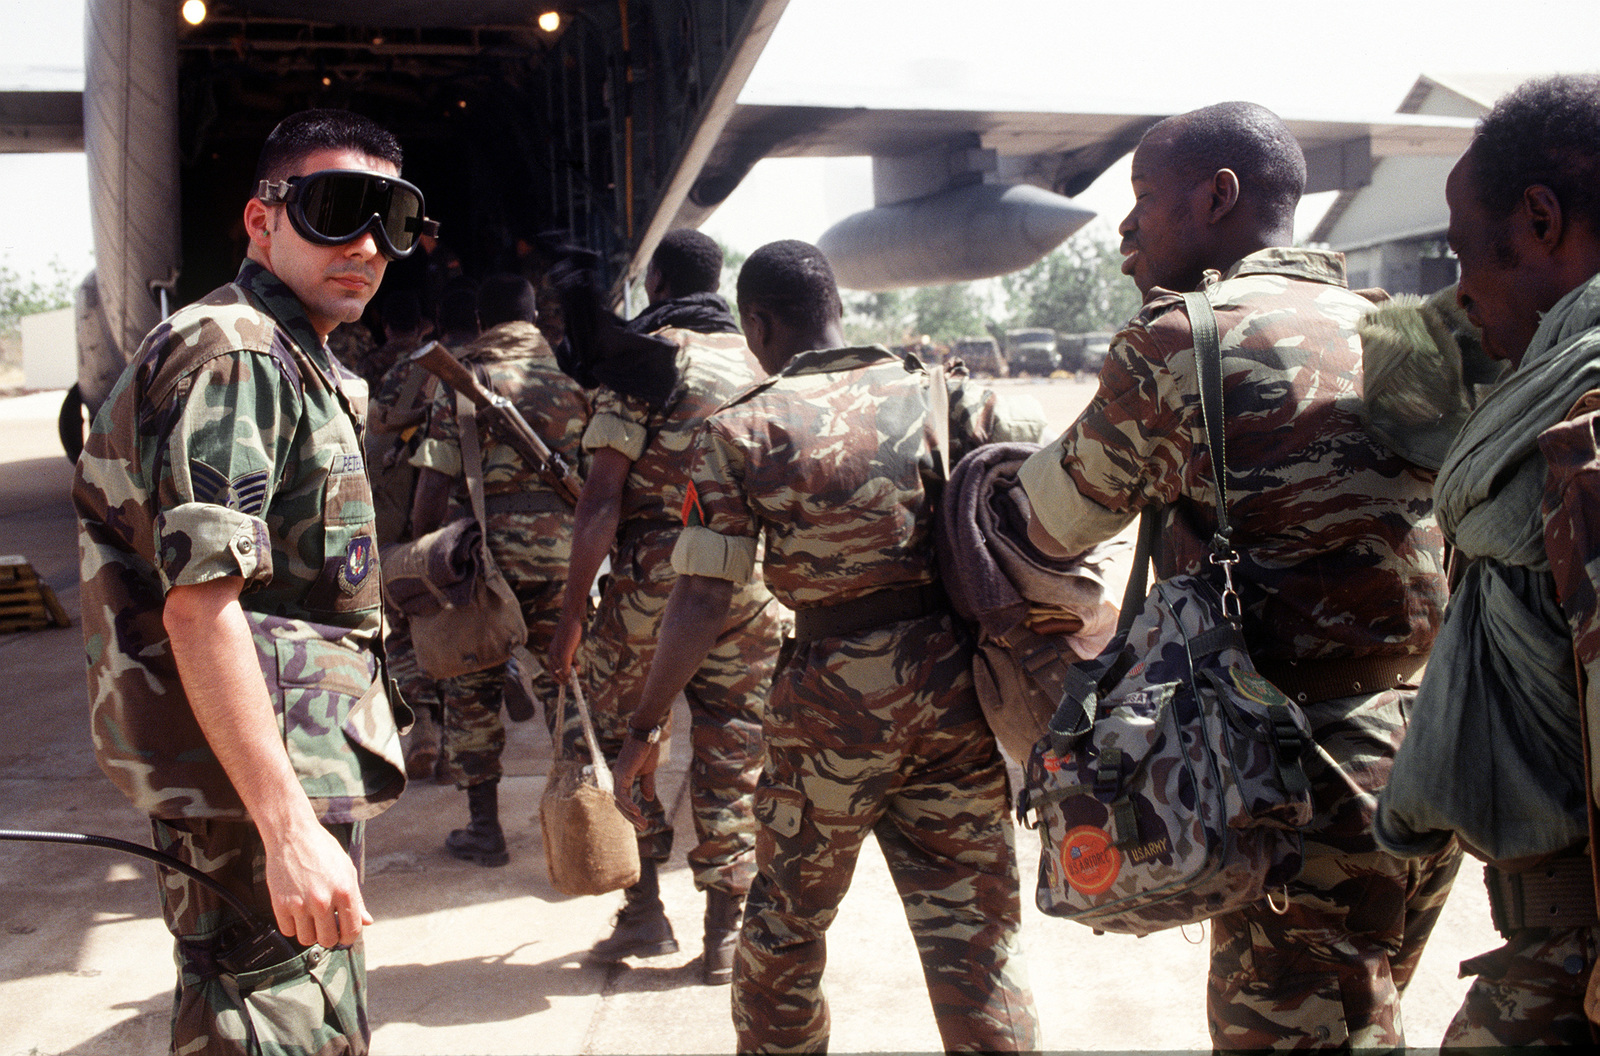 A U.S. Air Force STAFF Sergeant assists Mali Army troops from the Economic Community Military Observation Group 13 (ECOMOG) Mali Army troops as they board a U.S. Air Force C-130E from the 86th Airlift Wing, Ramstein Air Base, Germany at Bamako/Seou Airport, Mali. The troops are being airlifted to Robert's International Airport, Liberia for a six month deployment on U.S. military aircraft participating in Operation Assured Lift, a 17- day United States airlift and support mission assisting the West African states deploying more than 1100 troops to Liberia as part of the region's ongoing peacekeeping force